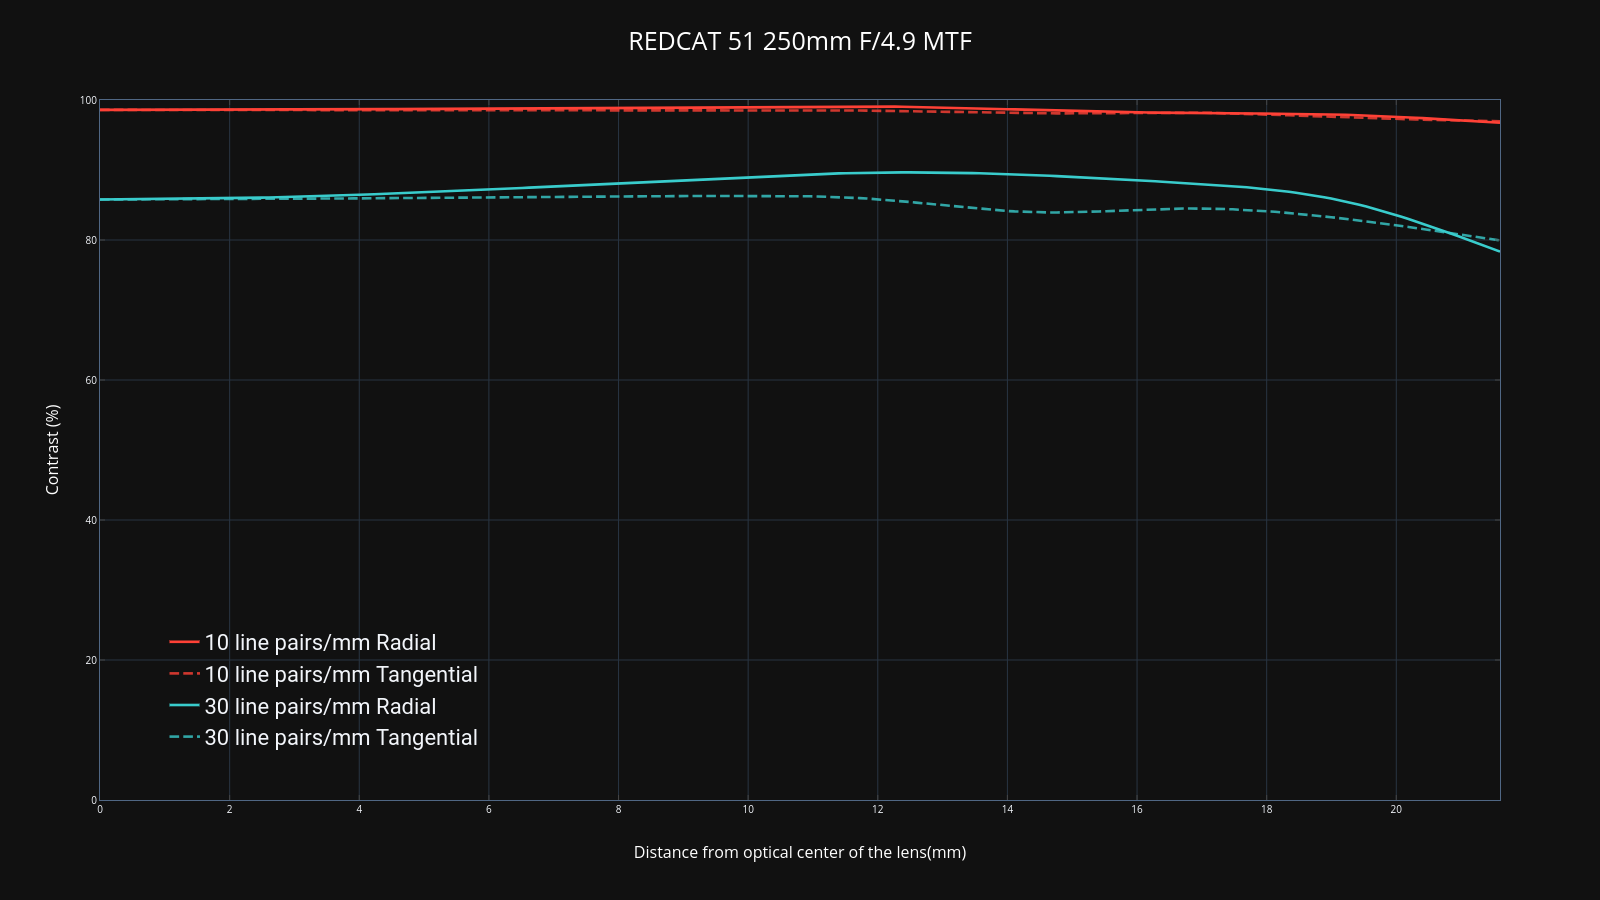 REDCAT 51 250mm F/4.9 MTF | line chart made by Jamesxc | plotly